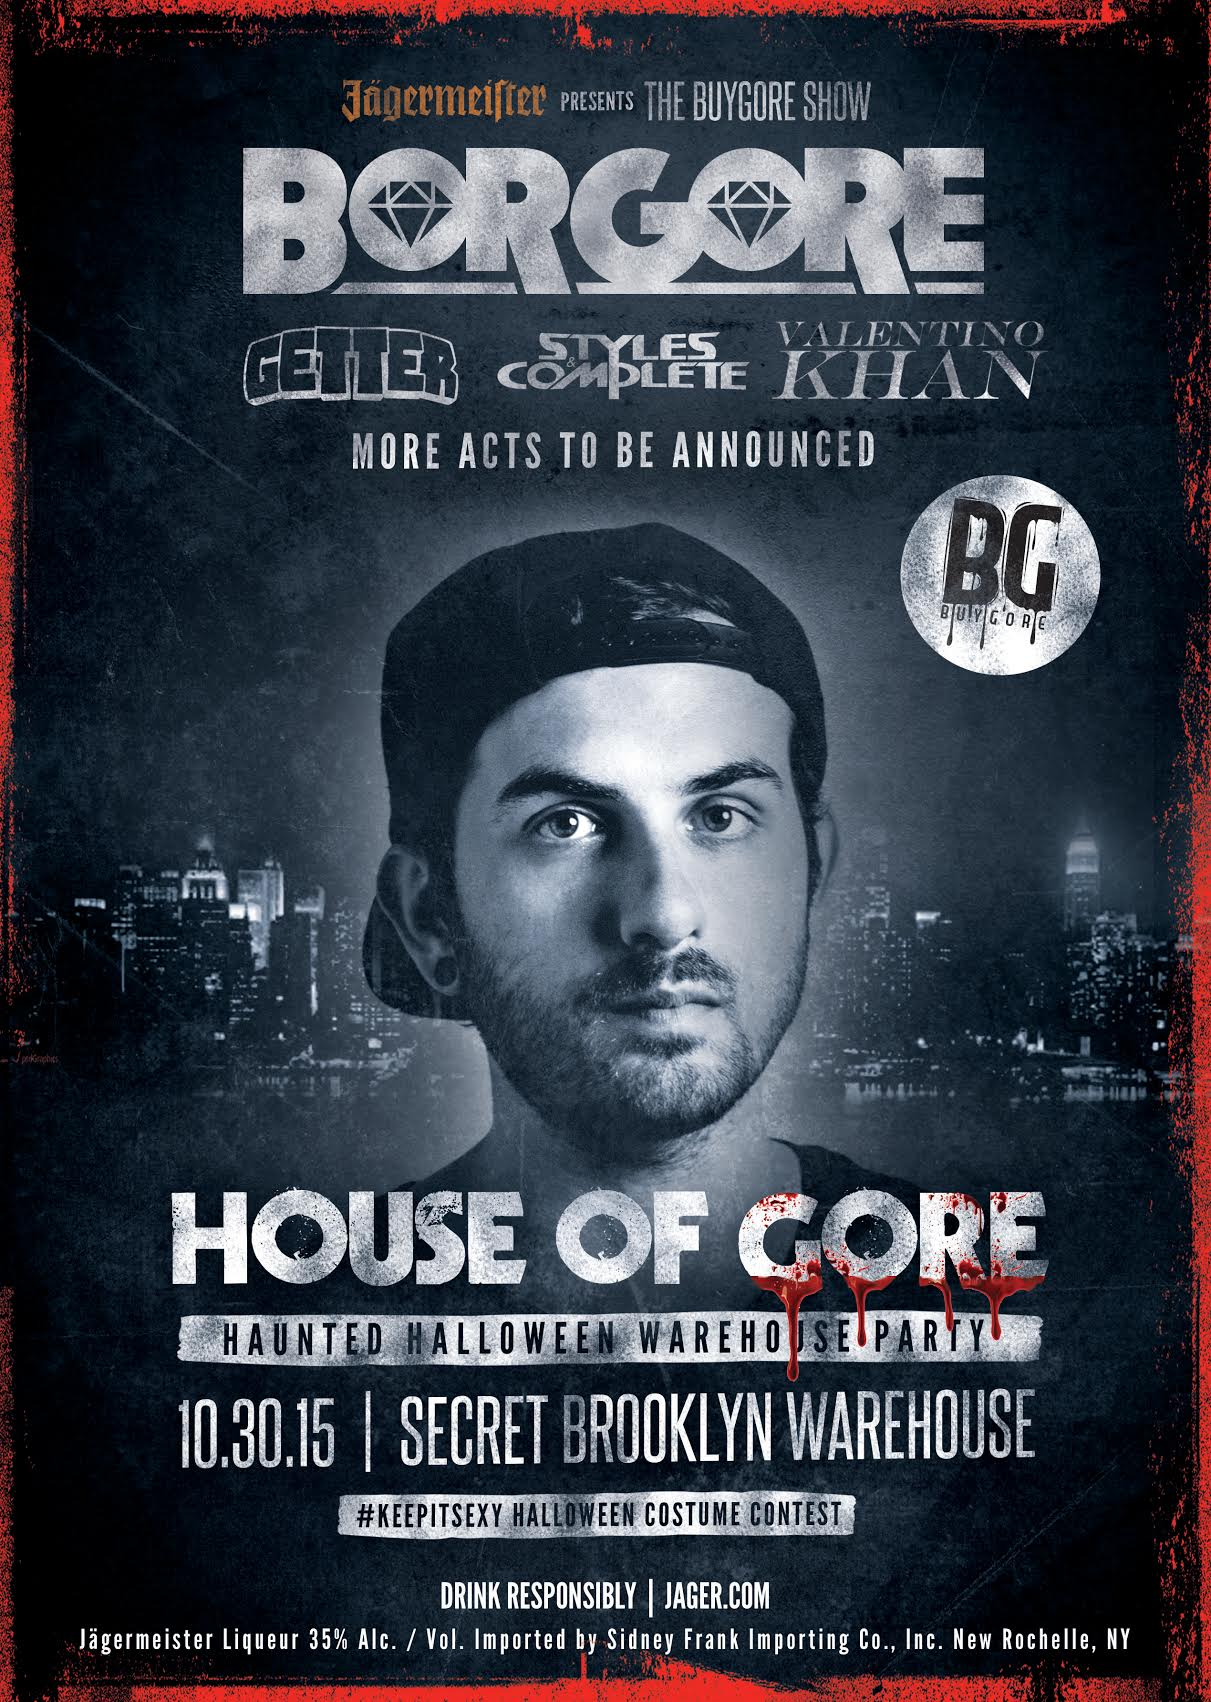 BORGORE, GETTER, STYLES & COMPLETE, VALENTINO KHAN Tickets 10/30/15